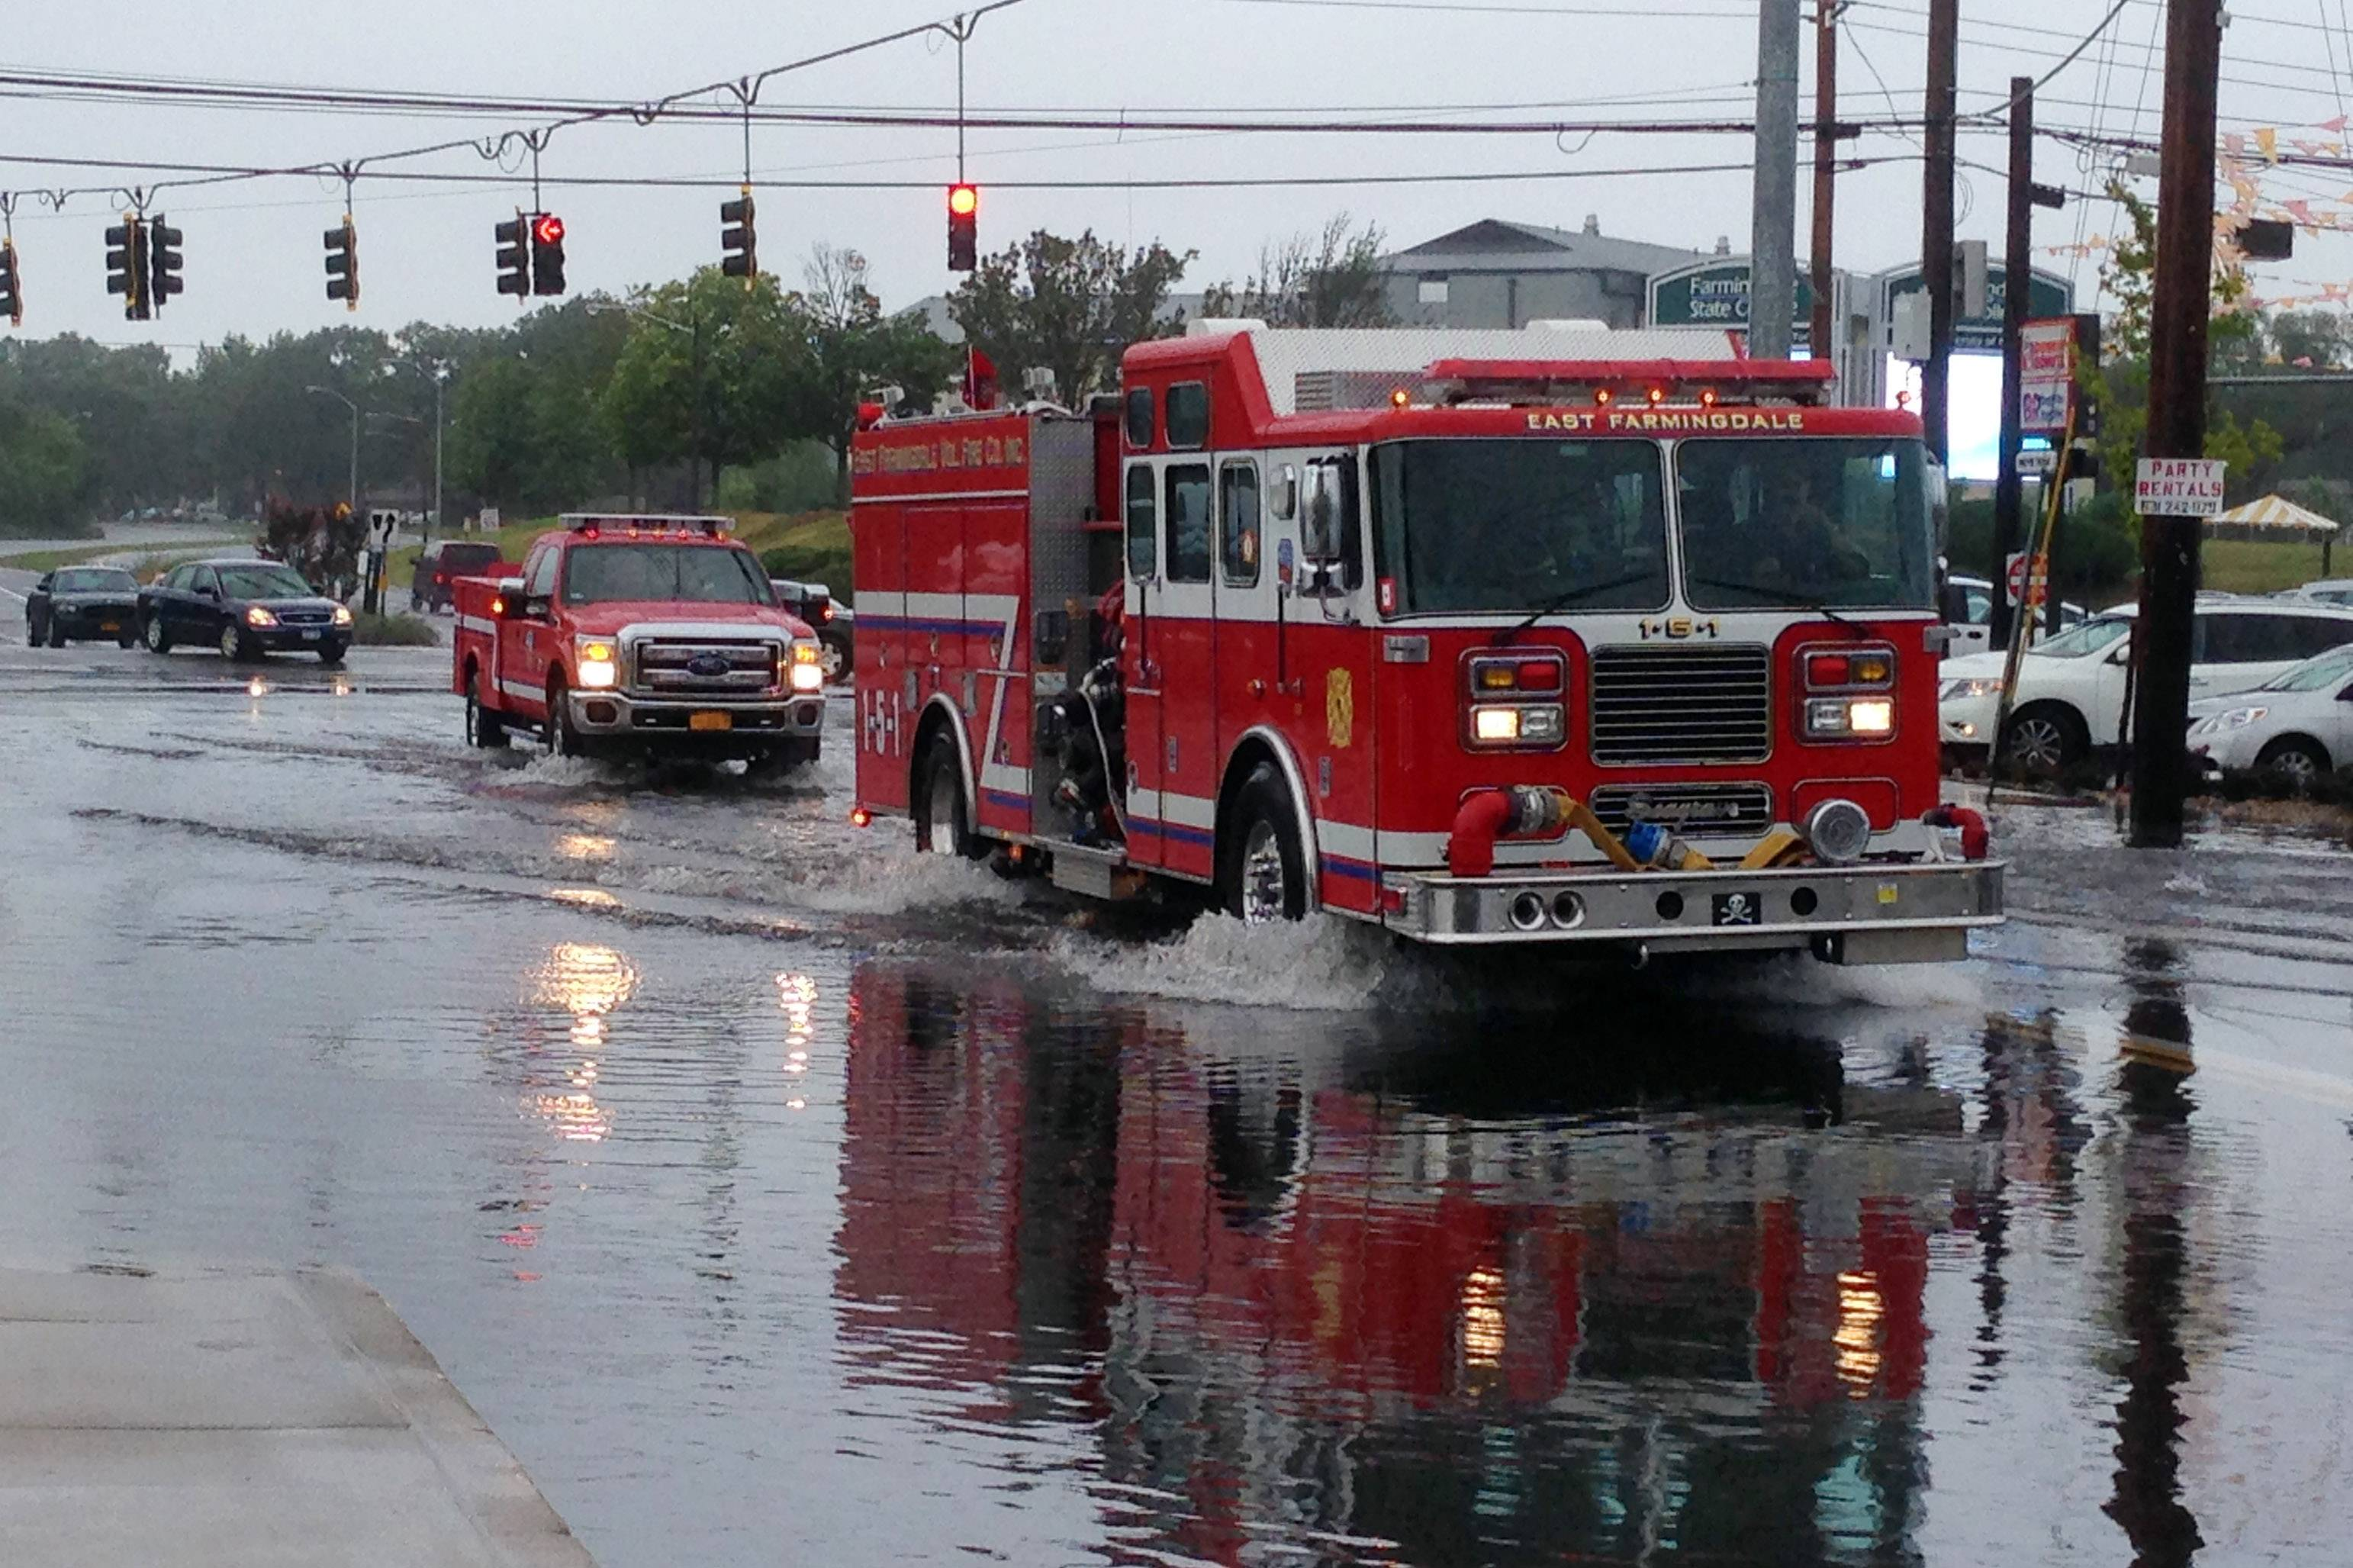 Firefighters cross a flooded intersection on Route 110 in Farmingdale, N.Y., on New York's Long Island, Wednesday, Aug. 13, 2014. Stranded Long Island drivers have been rescued after a storm slammed Islip, N.Y., with over 12 inches of rain -- an entire summer's worth.